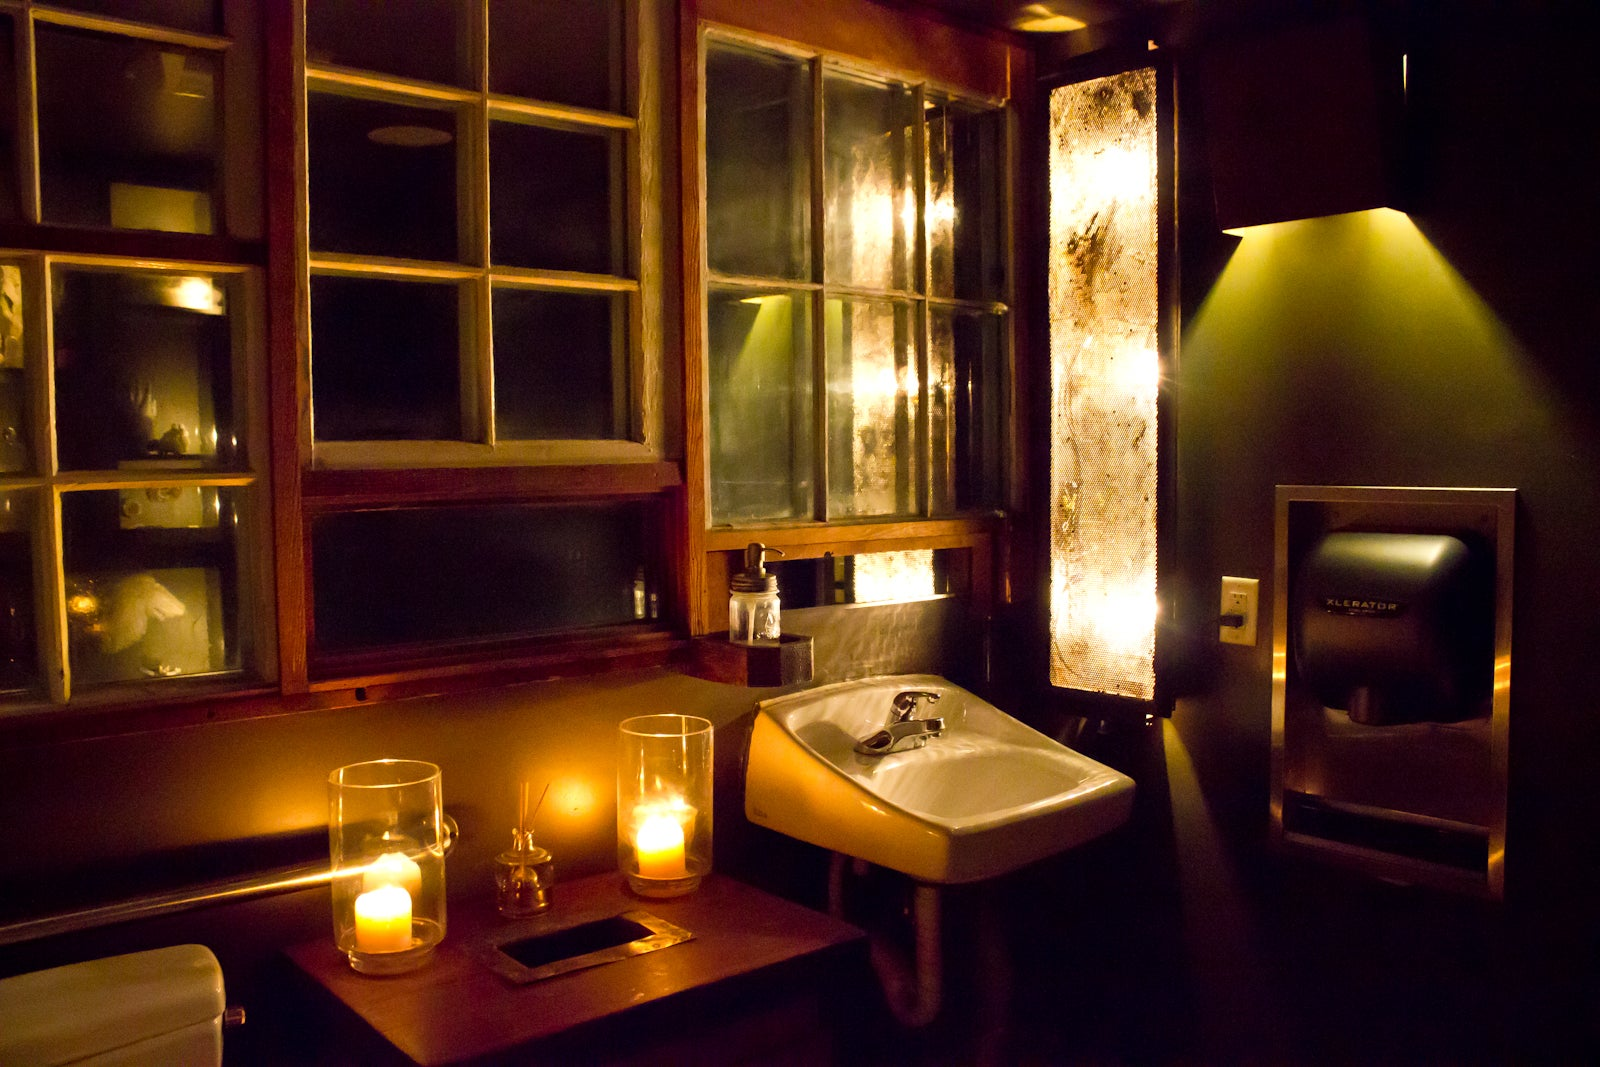 Flour   Water Woodsy accents  soft golden light  and beautiful antiqued mirrors   yep  this restroom is the stuff of dreams  Every surface has been thought. Coolest Bathrooms San Francisco   Best Restaurant Bathrooms San Franci